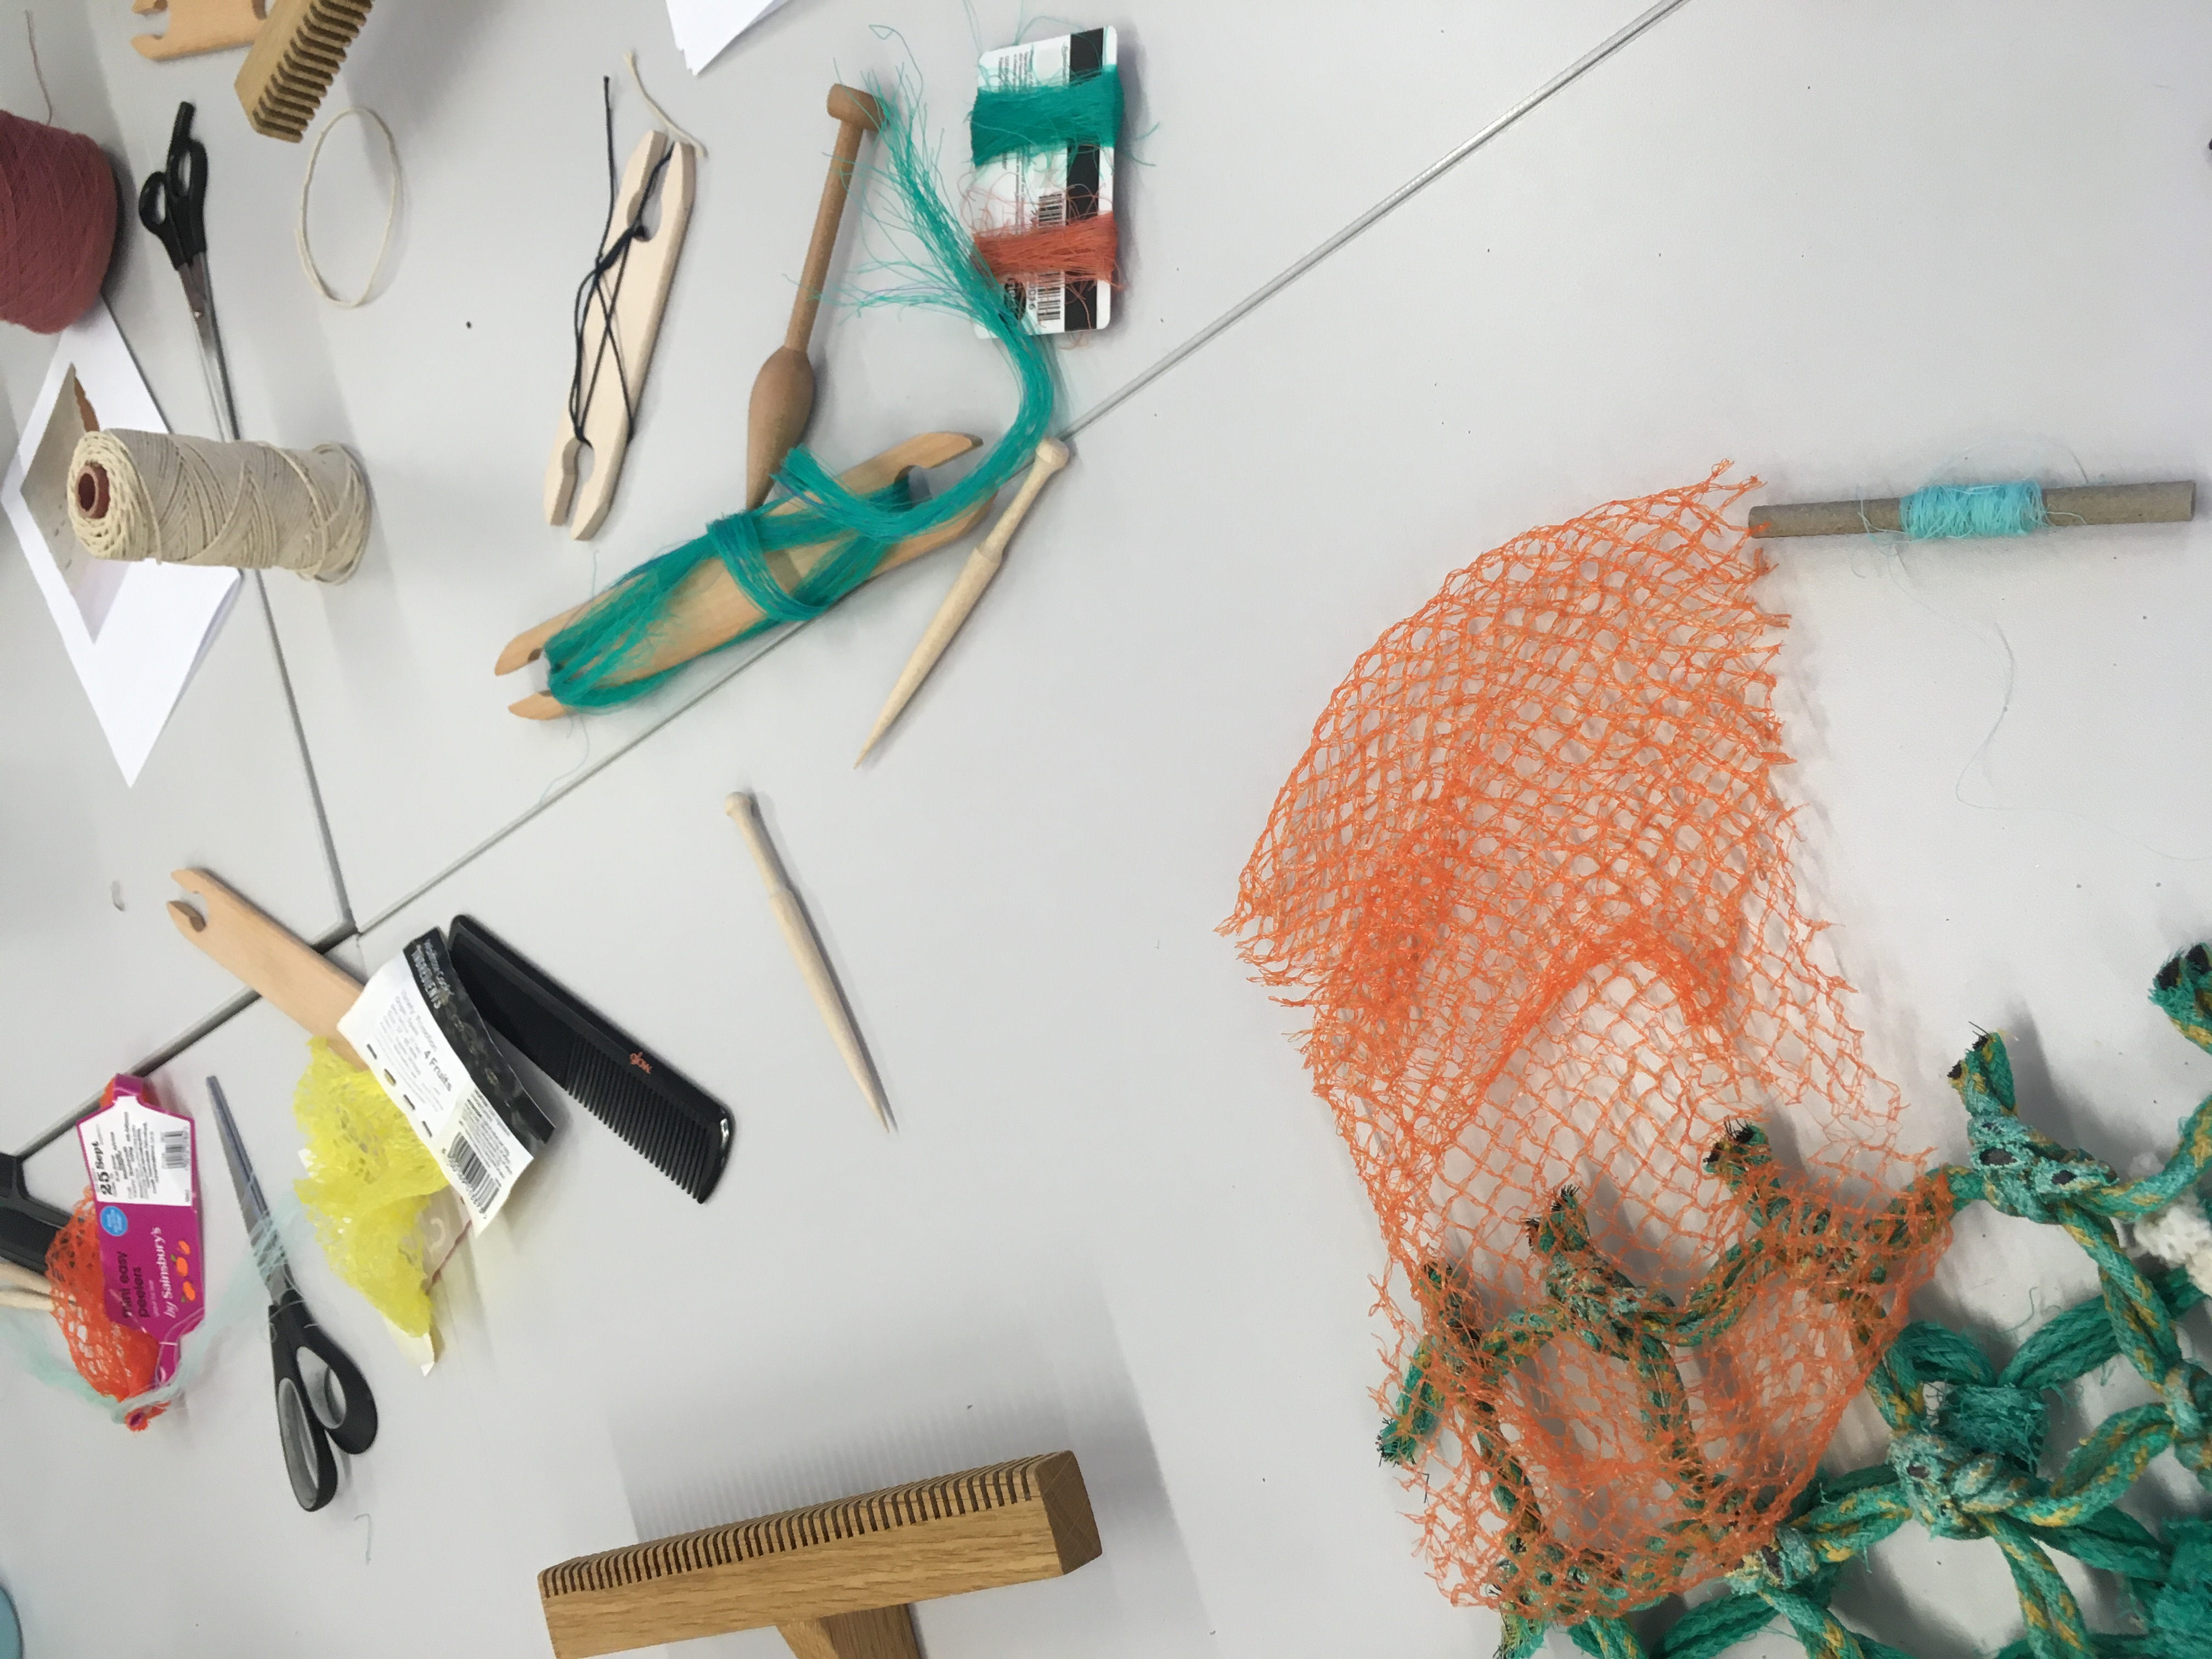 Netting Weaving with Beach Clean Project